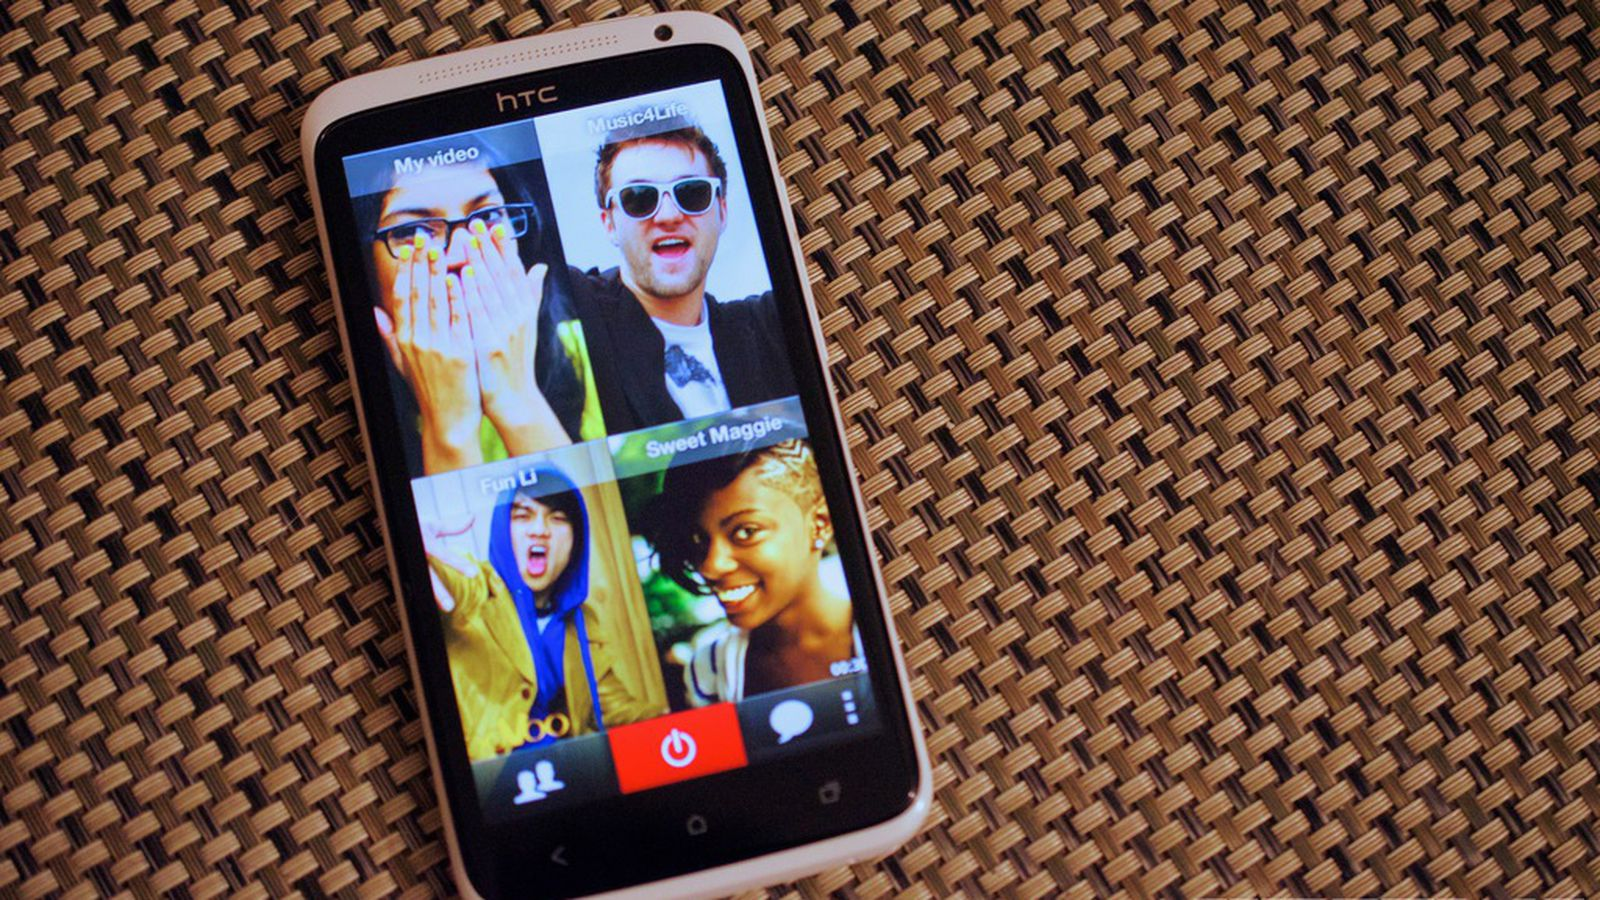 how to 3 way video call on iphone